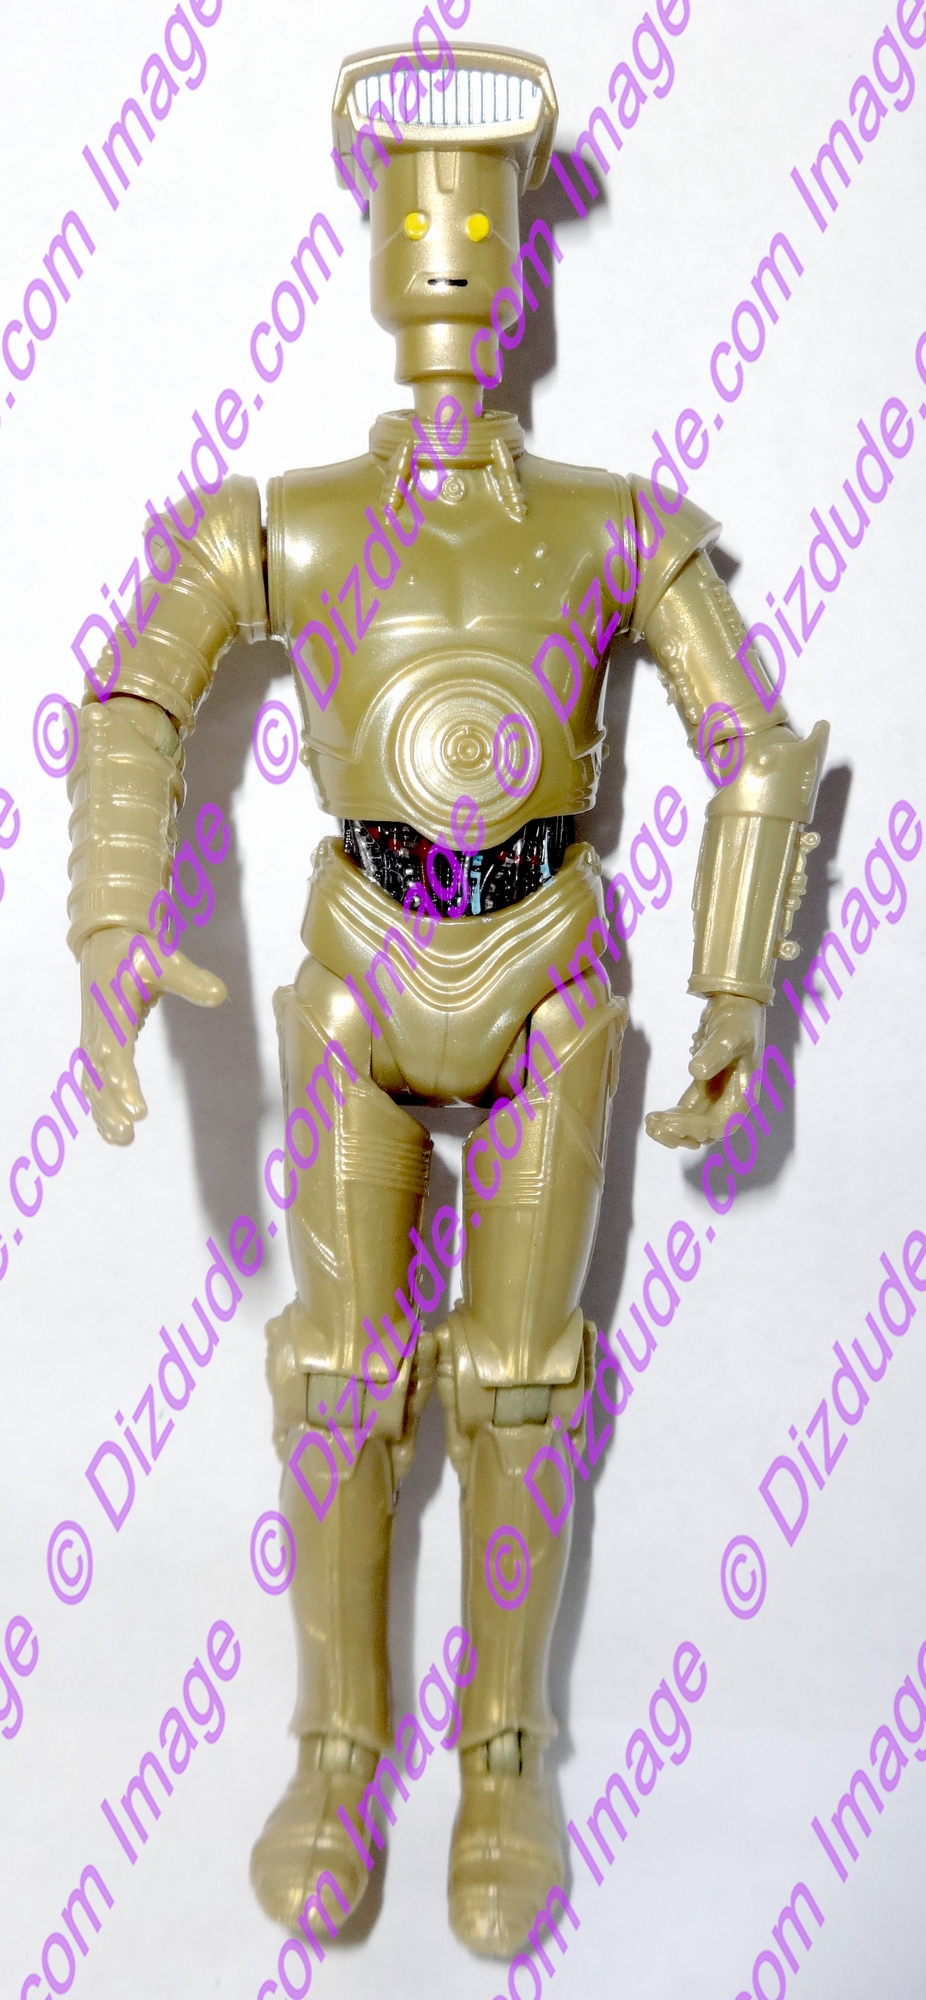 Gold Vender Protocol Droid from Disney Star Wars Build-A-Droid Factory